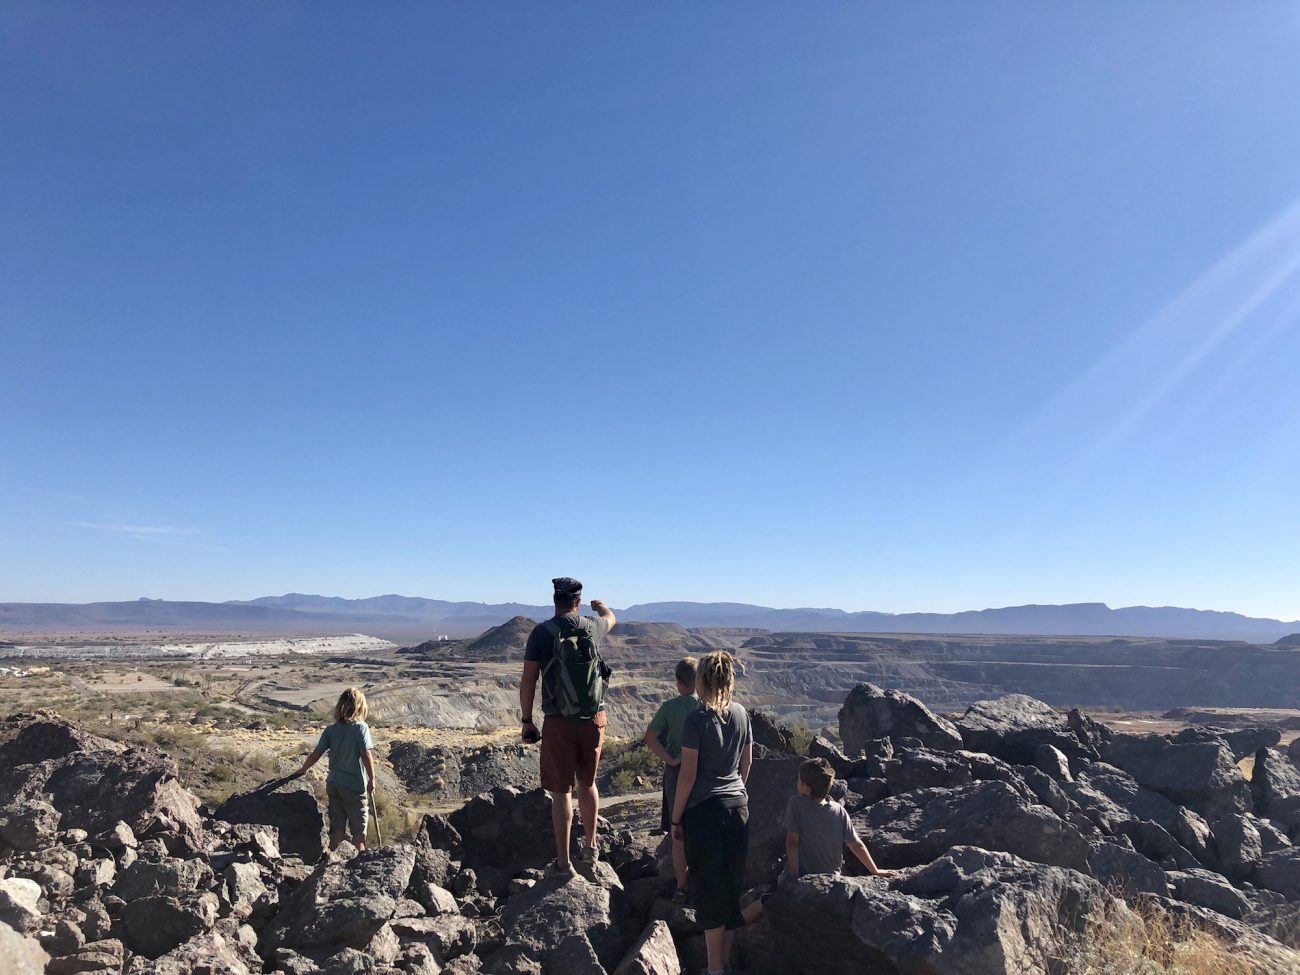 Jon and kids at top of mine overlooking the Ajo valley.